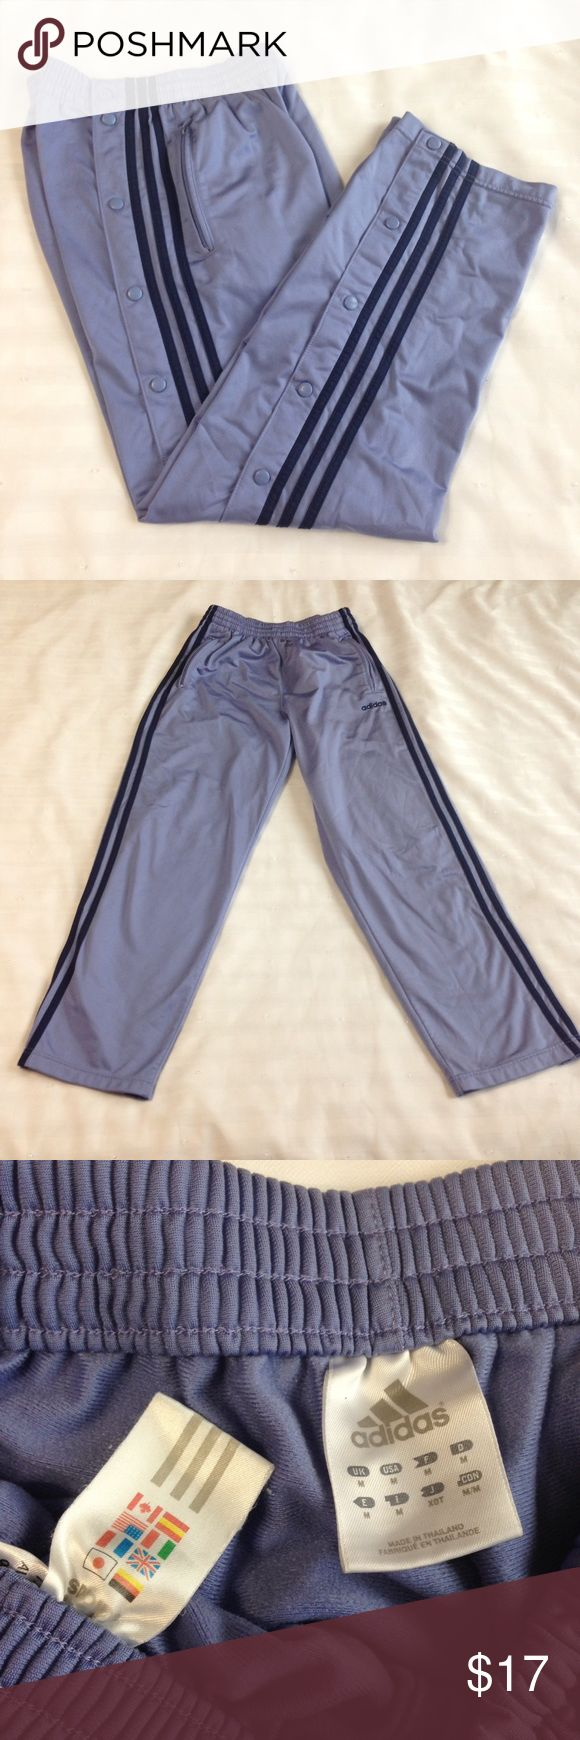 "🔮Women's Adidas purple track pants / sweatpants🔮 Women's Adidas purple track pants, sweatpants, running etc  Only flaw, it has a barely noticeable beige stain in the back as shown in 4th photo, that's why I have them at this low price, overall in very good preowned condition. Size M Medium, Button-up side closure. Two front zip pockets. There side stripes.  Reference RN # 88387 / CA # 40312  Measurements: Waist - appx 26"" All-around measured with the elastic unstreched. Inseam - appx 29…"